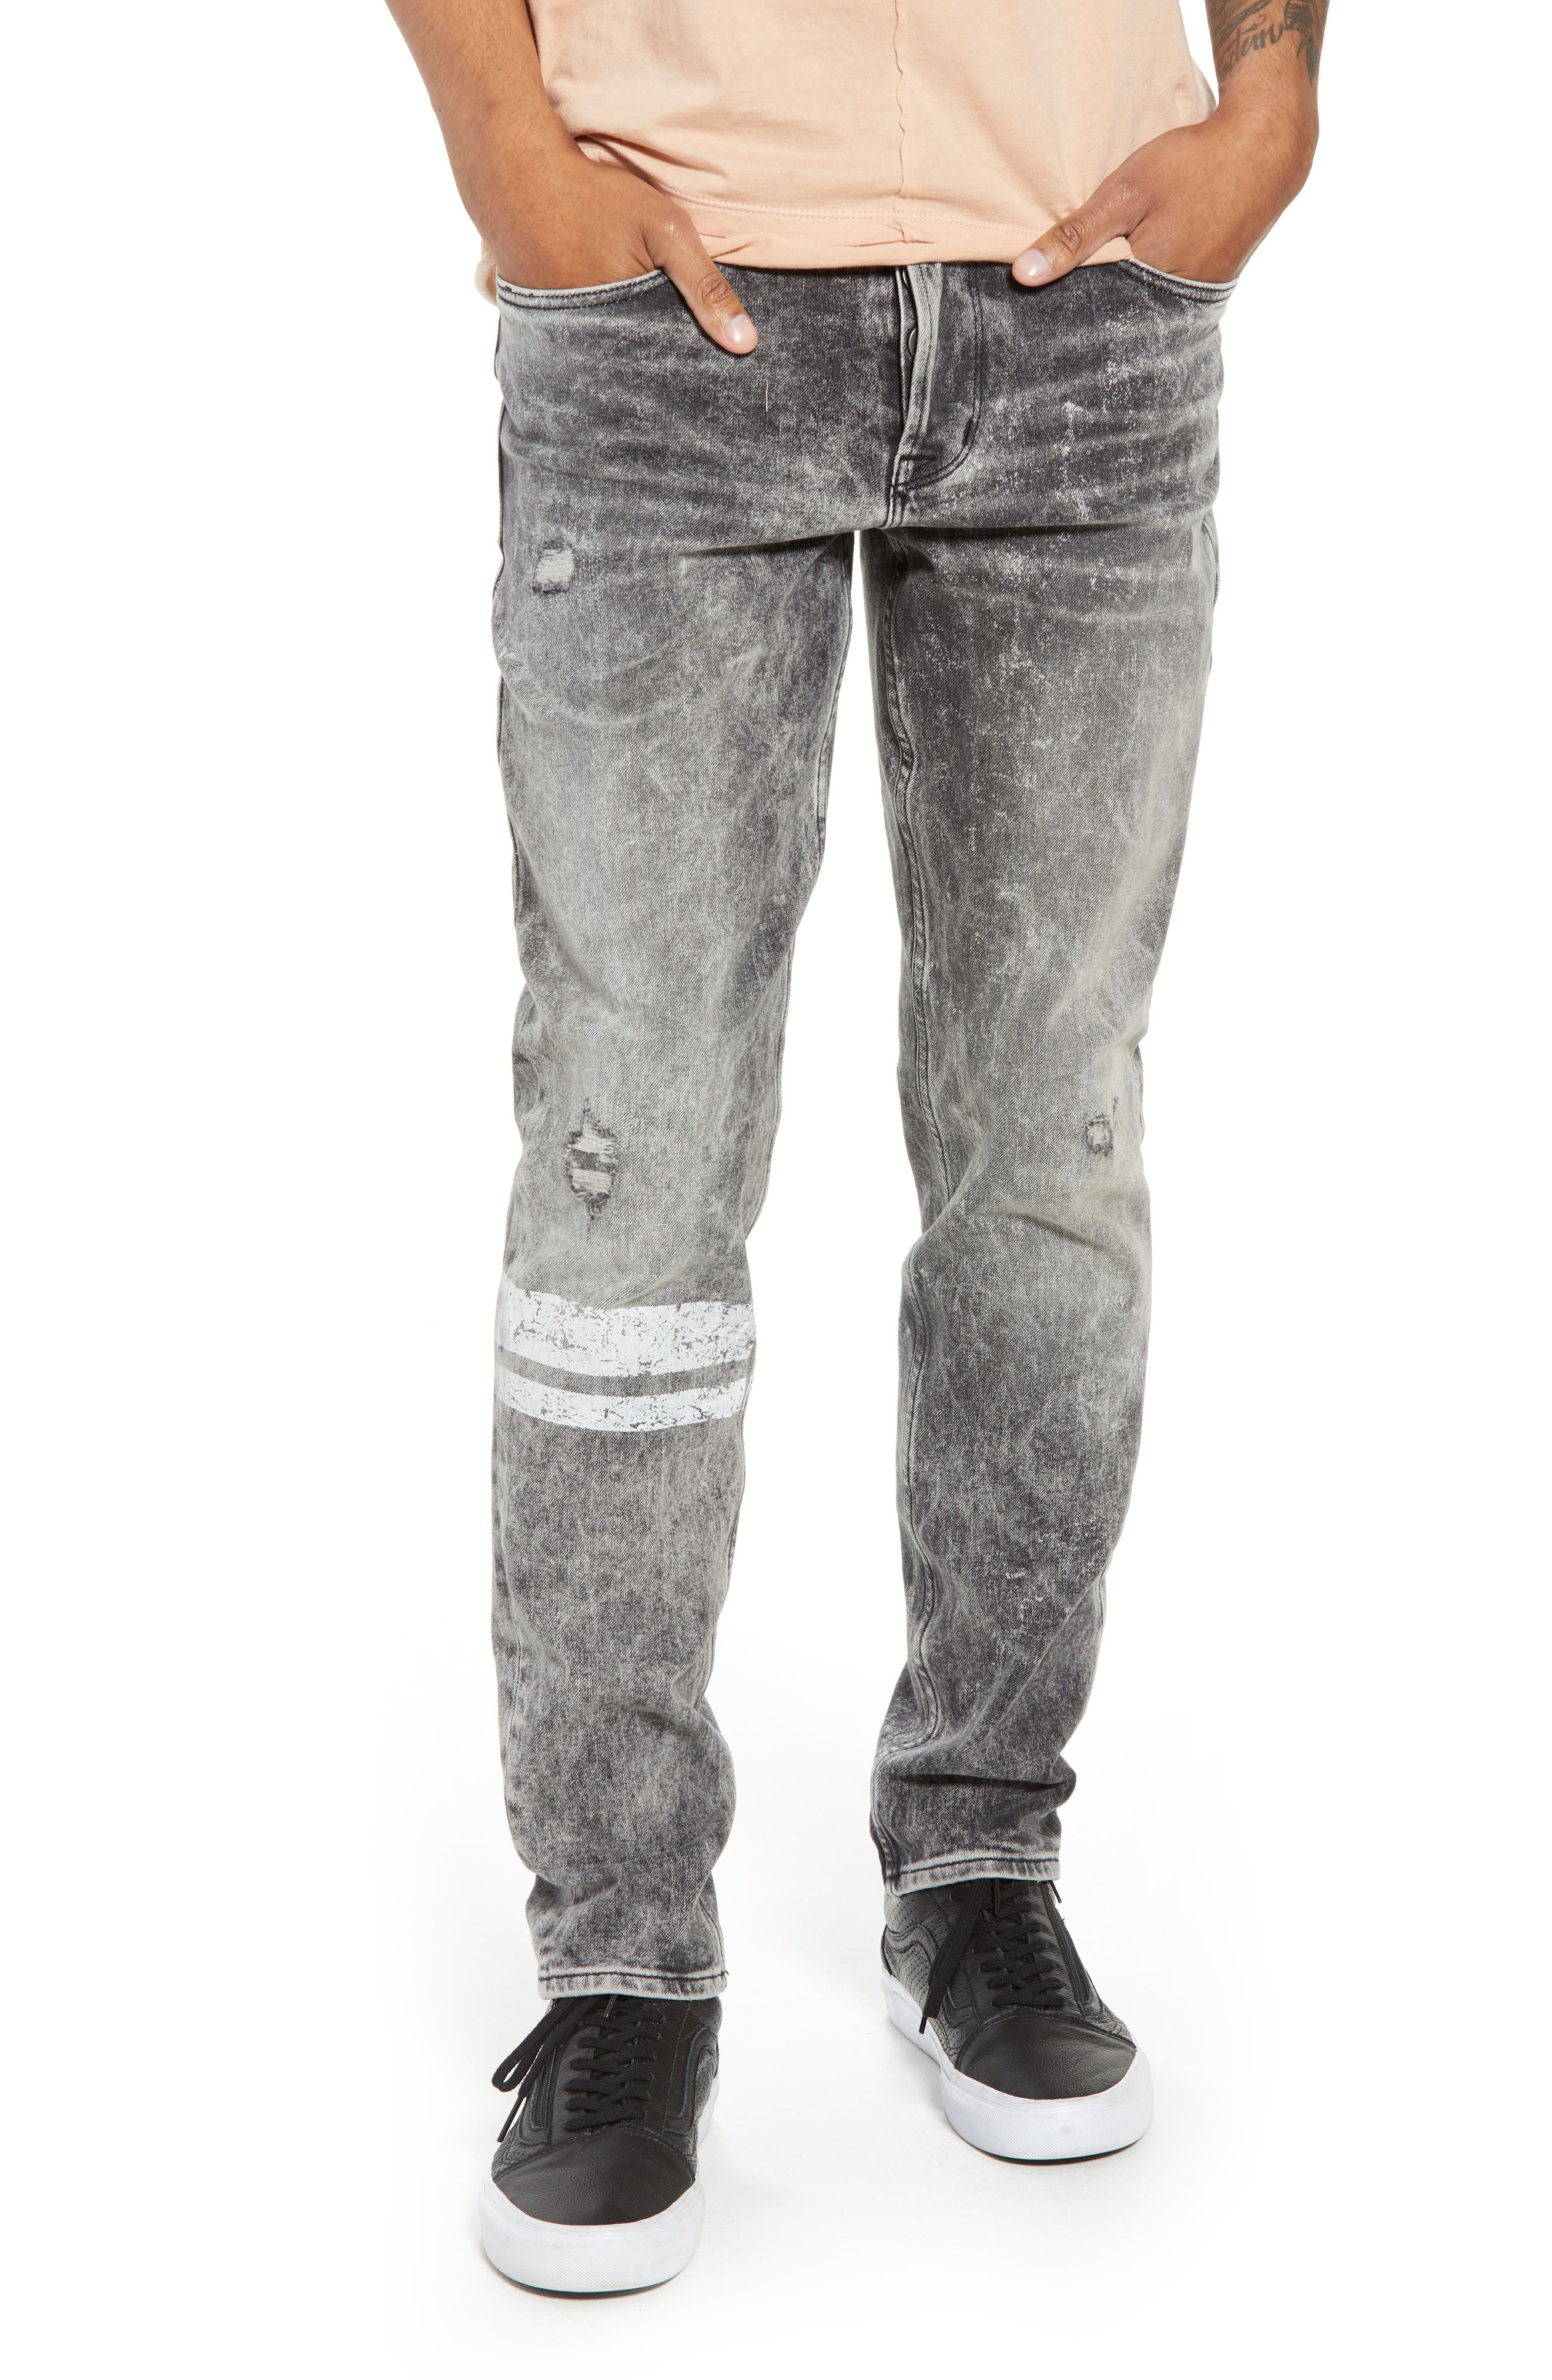 Sartor Slouchy Skinny Fit Jeans,                             Main thumbnail 1, color,                             Cut Copy